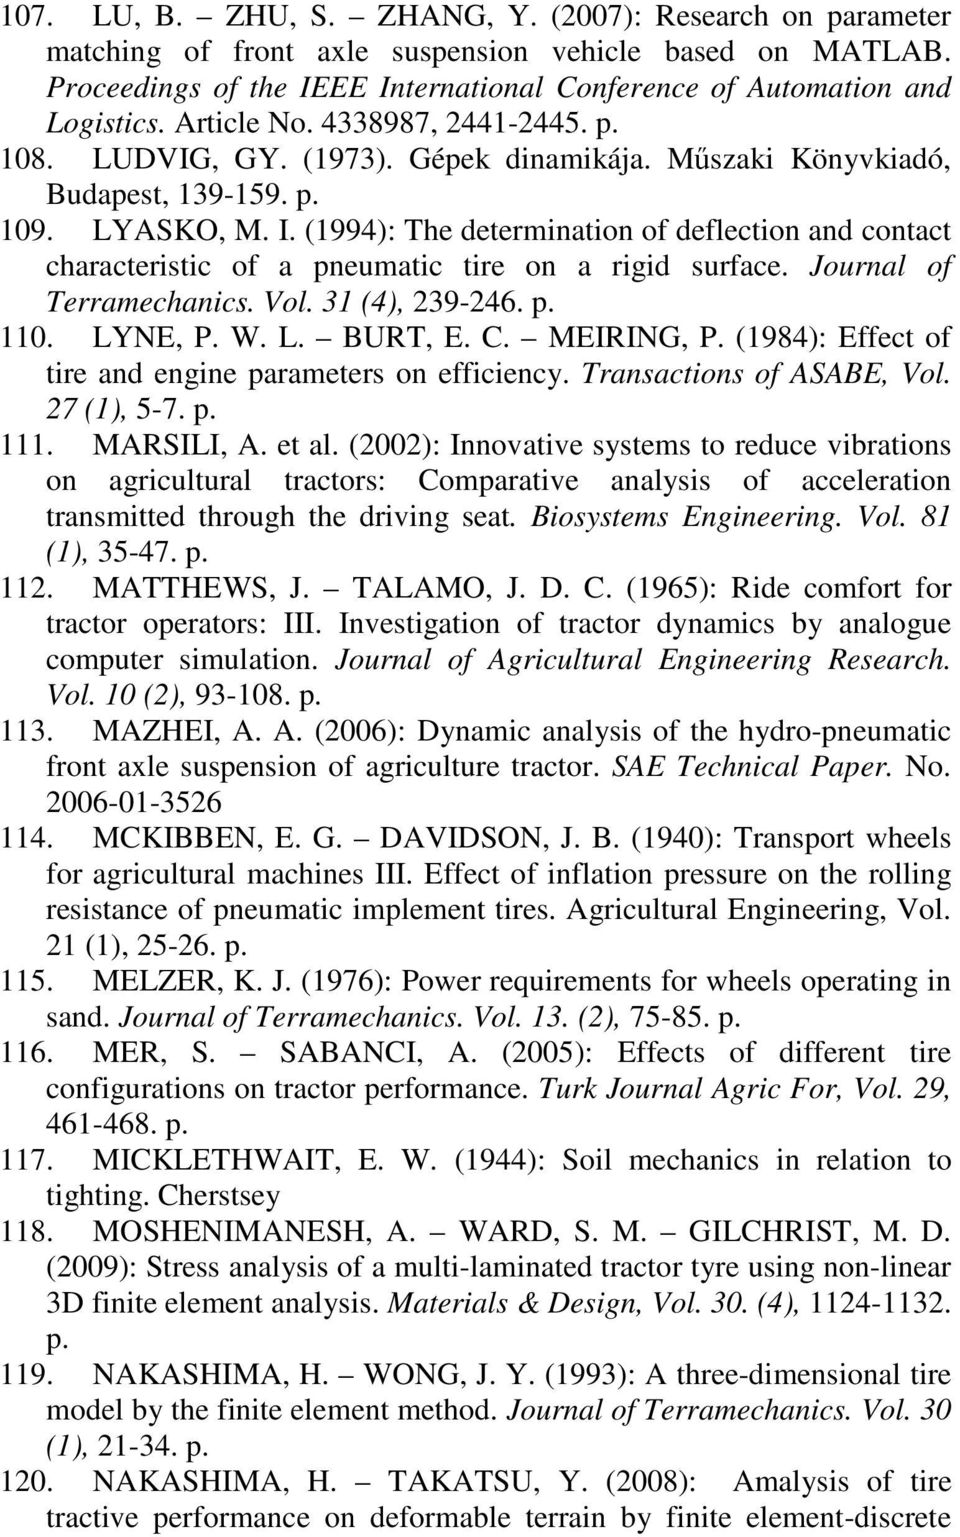 (1994): The determination of deflection and contact characteristic of a pneumatic tire on a rigid surface. Journal of Terramechanics. Vol. 31 (4), 239-246. p. 11. LYNE, P. W. L. BURT, E. C.